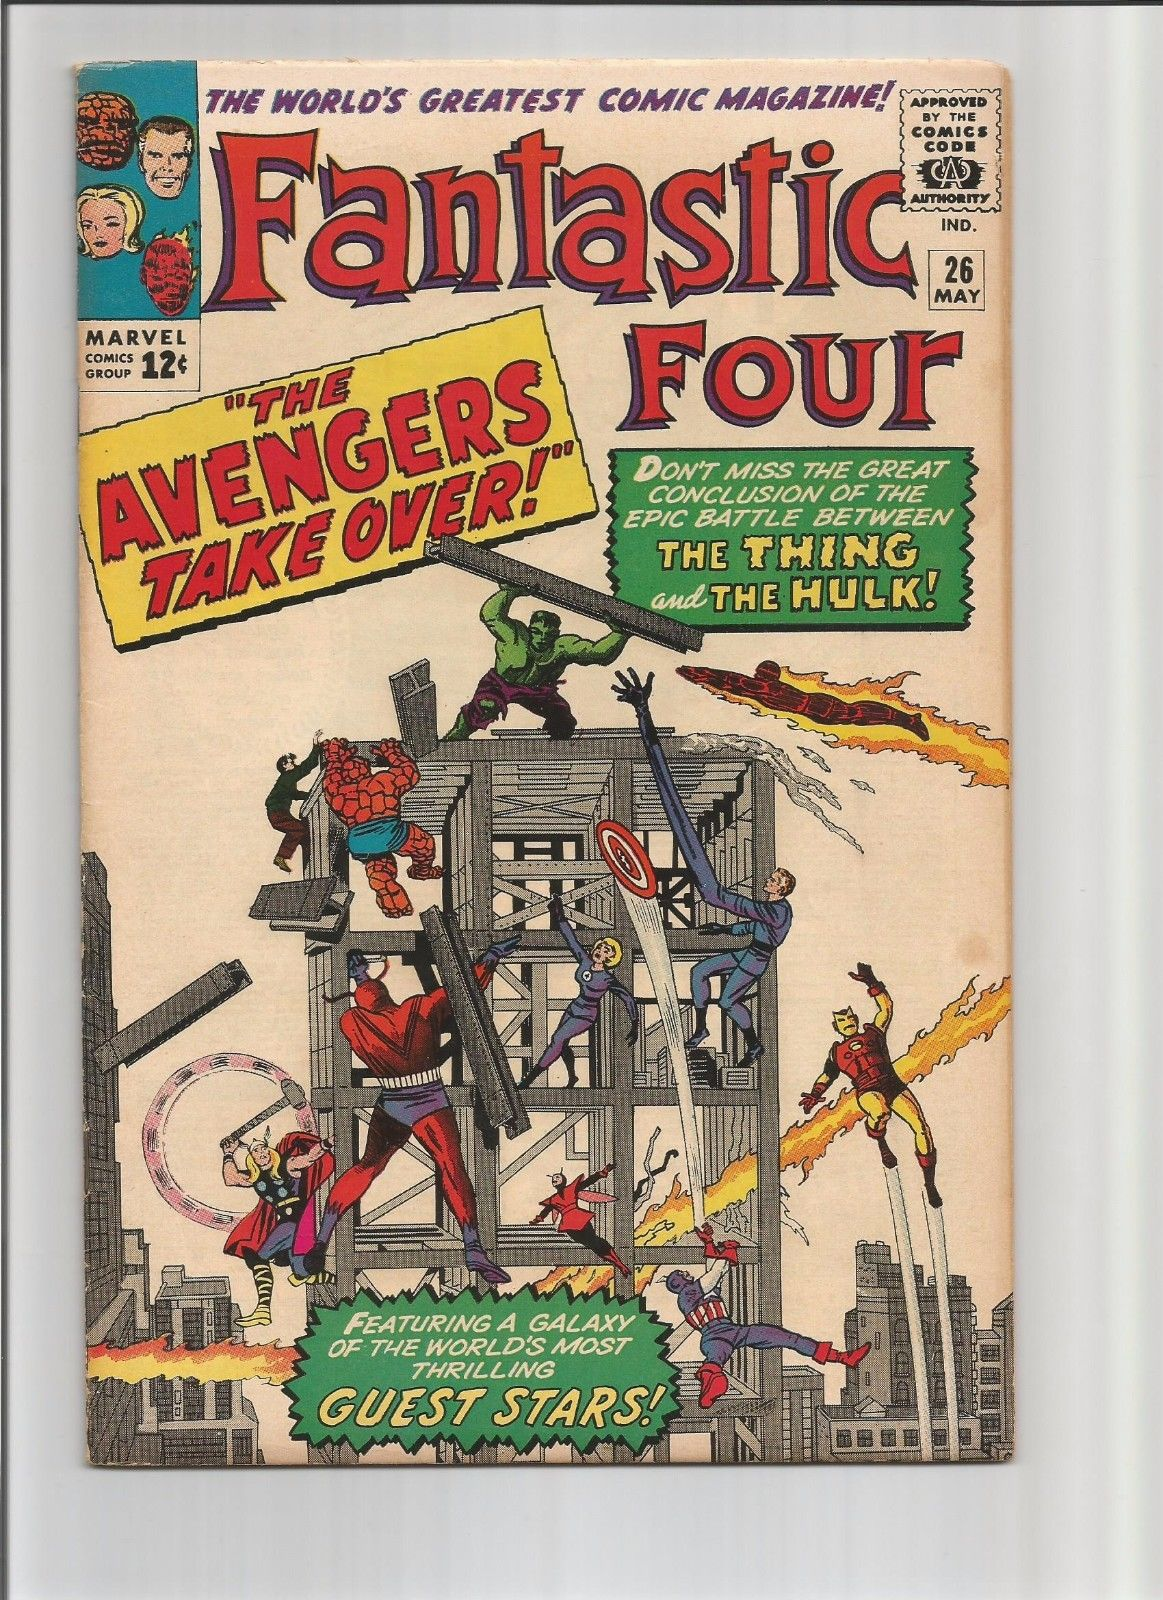 FANTASTIC FOUR 26 VERY FINE(8.0) V. 1 AVENGERS 1 X-OVER NOT CGC, 4, 5, 12, 25